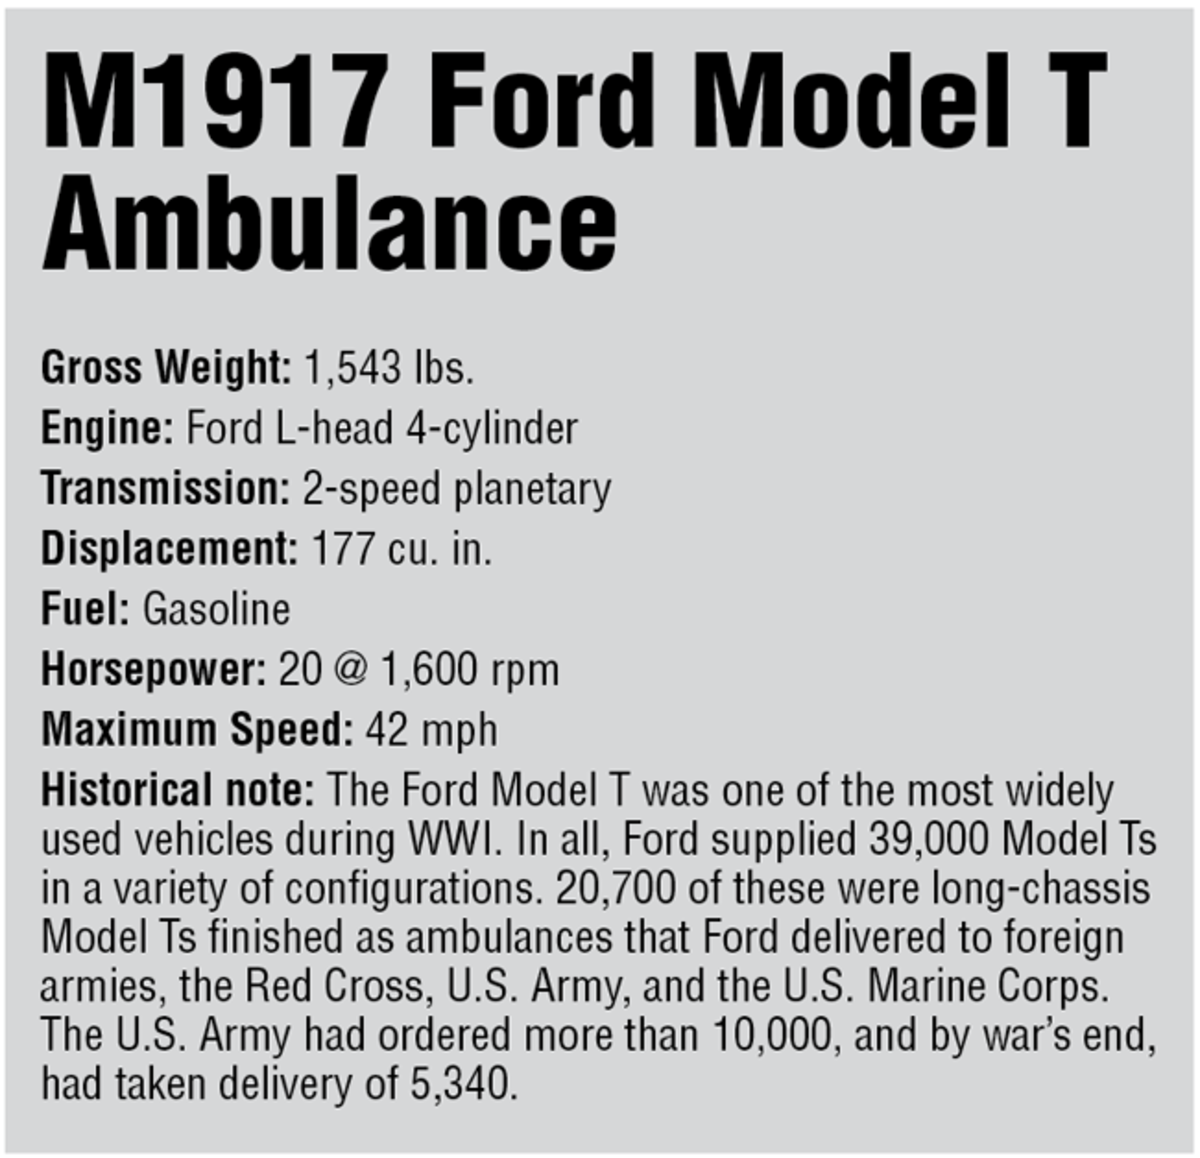 Specifications for Ford Model T Ambulance